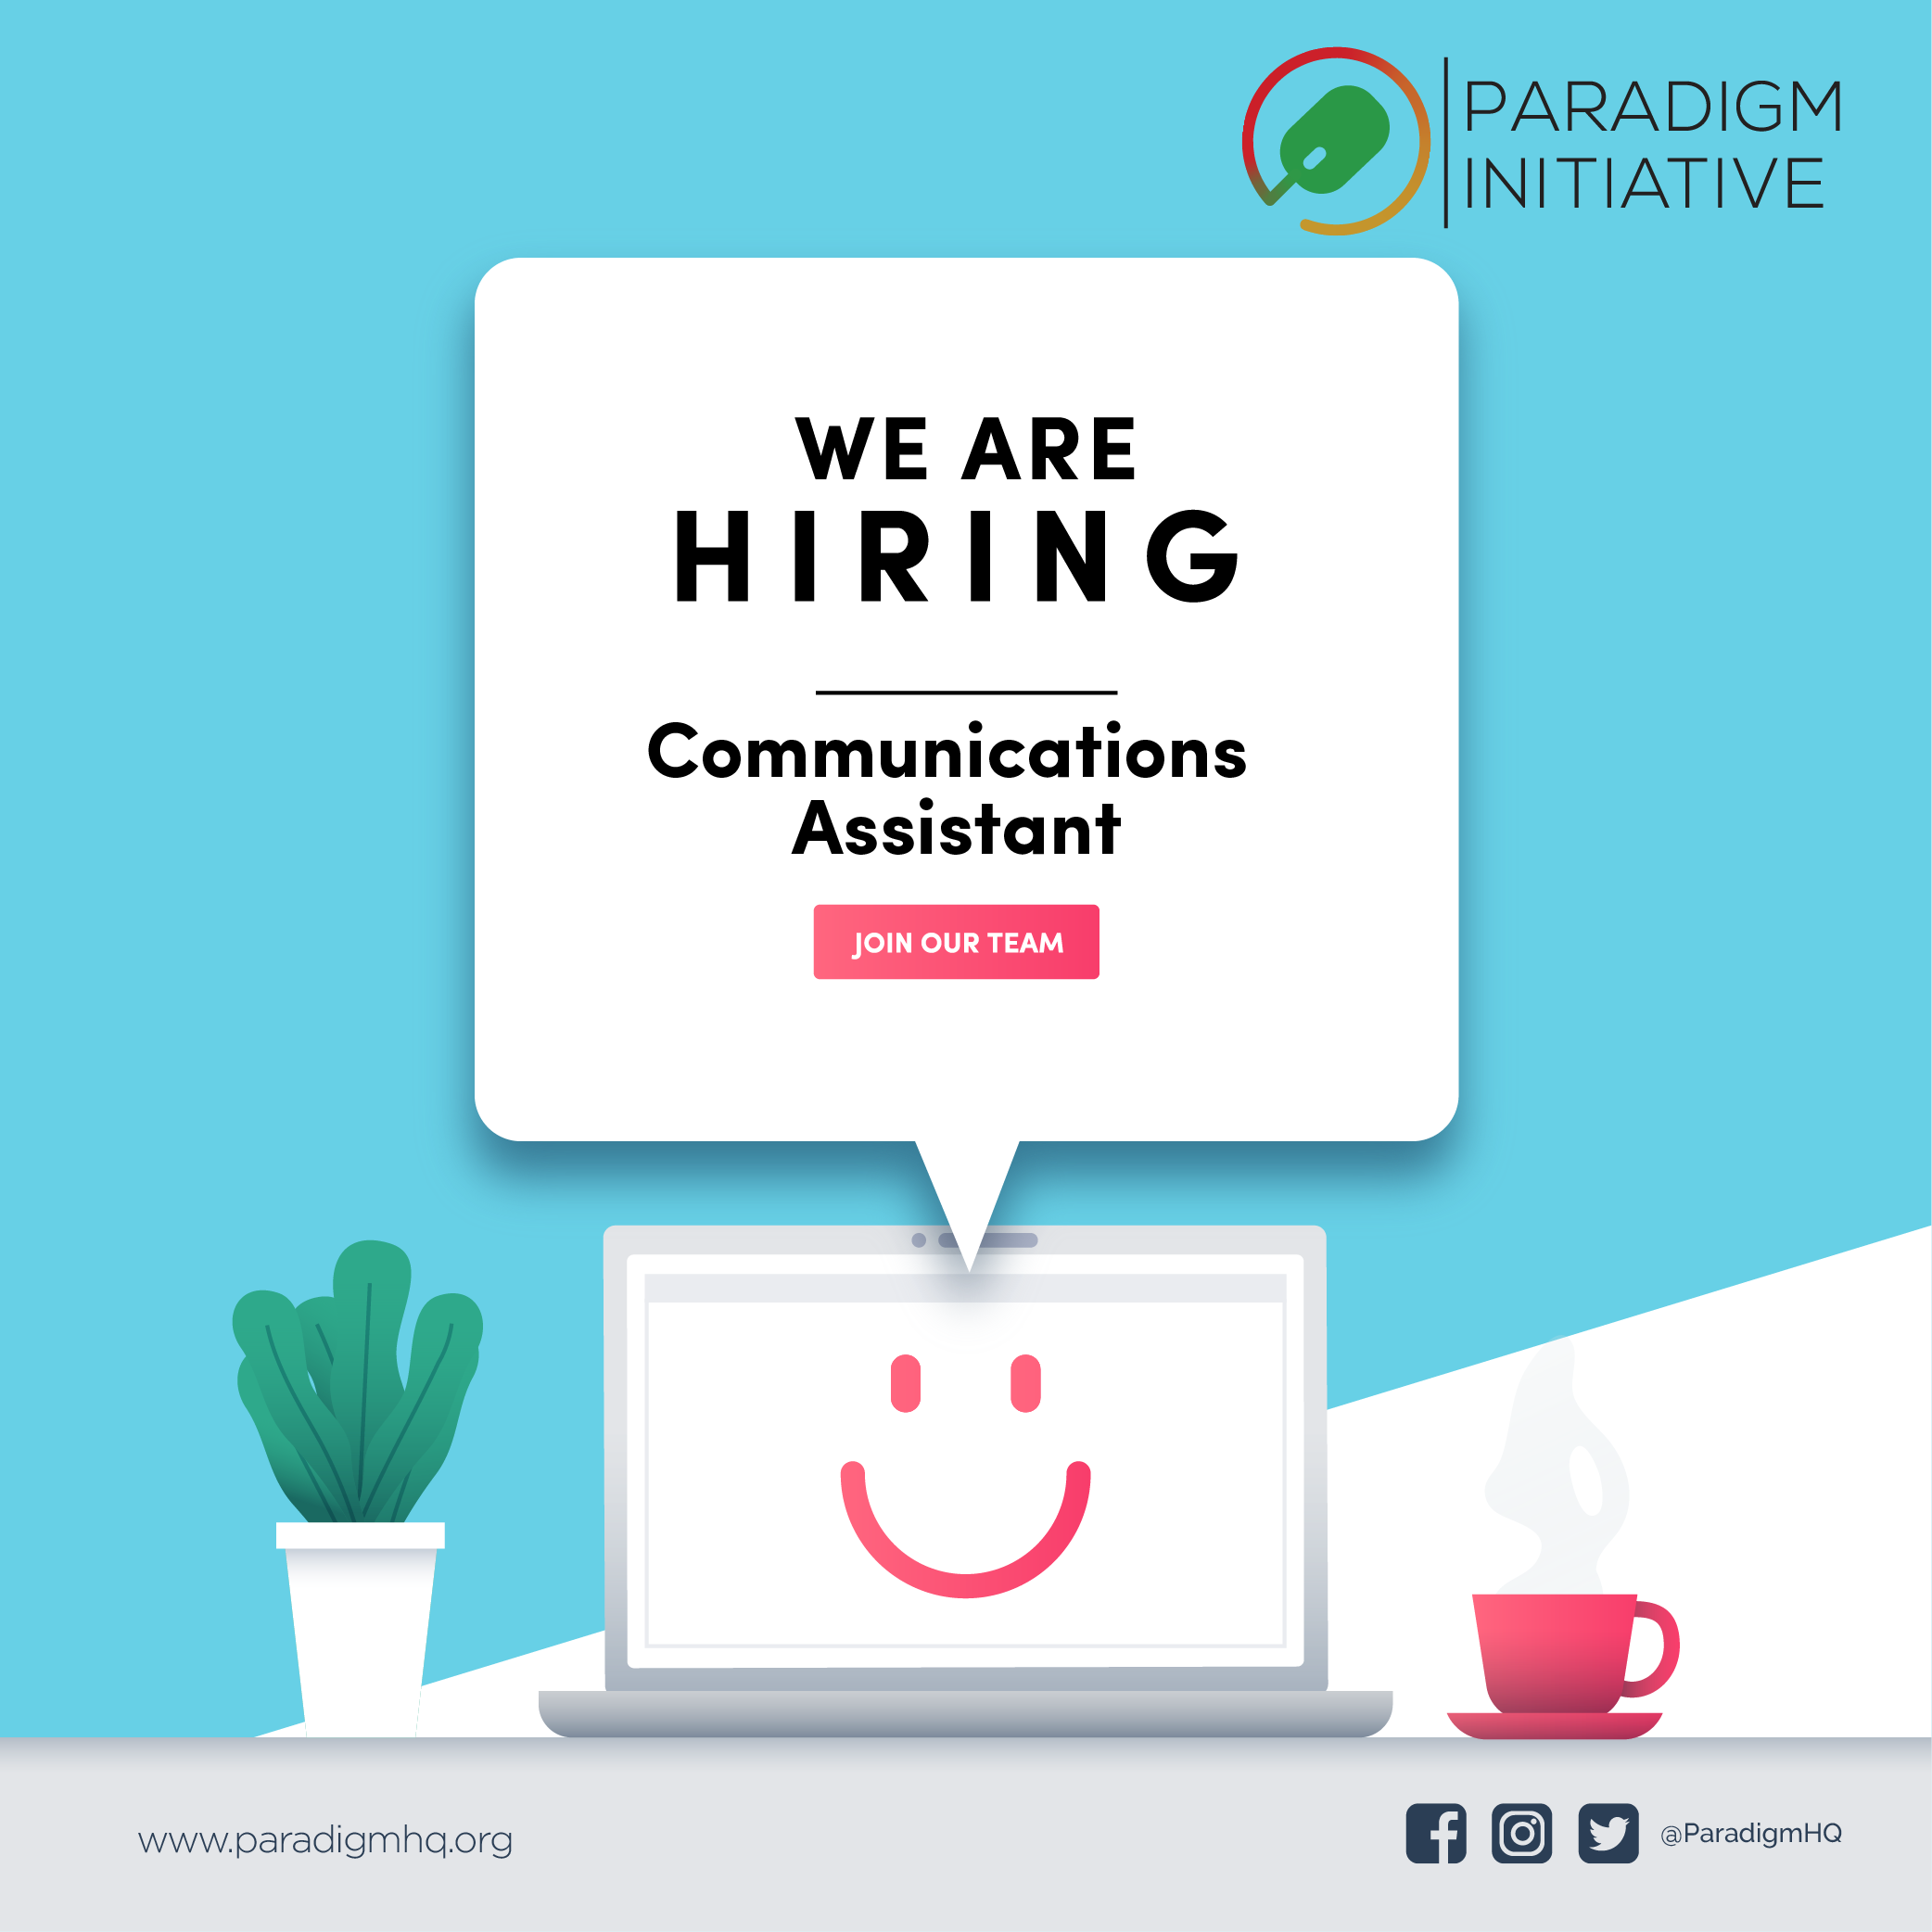 Vacancy: COMMUNICATIONS ASSISTANT